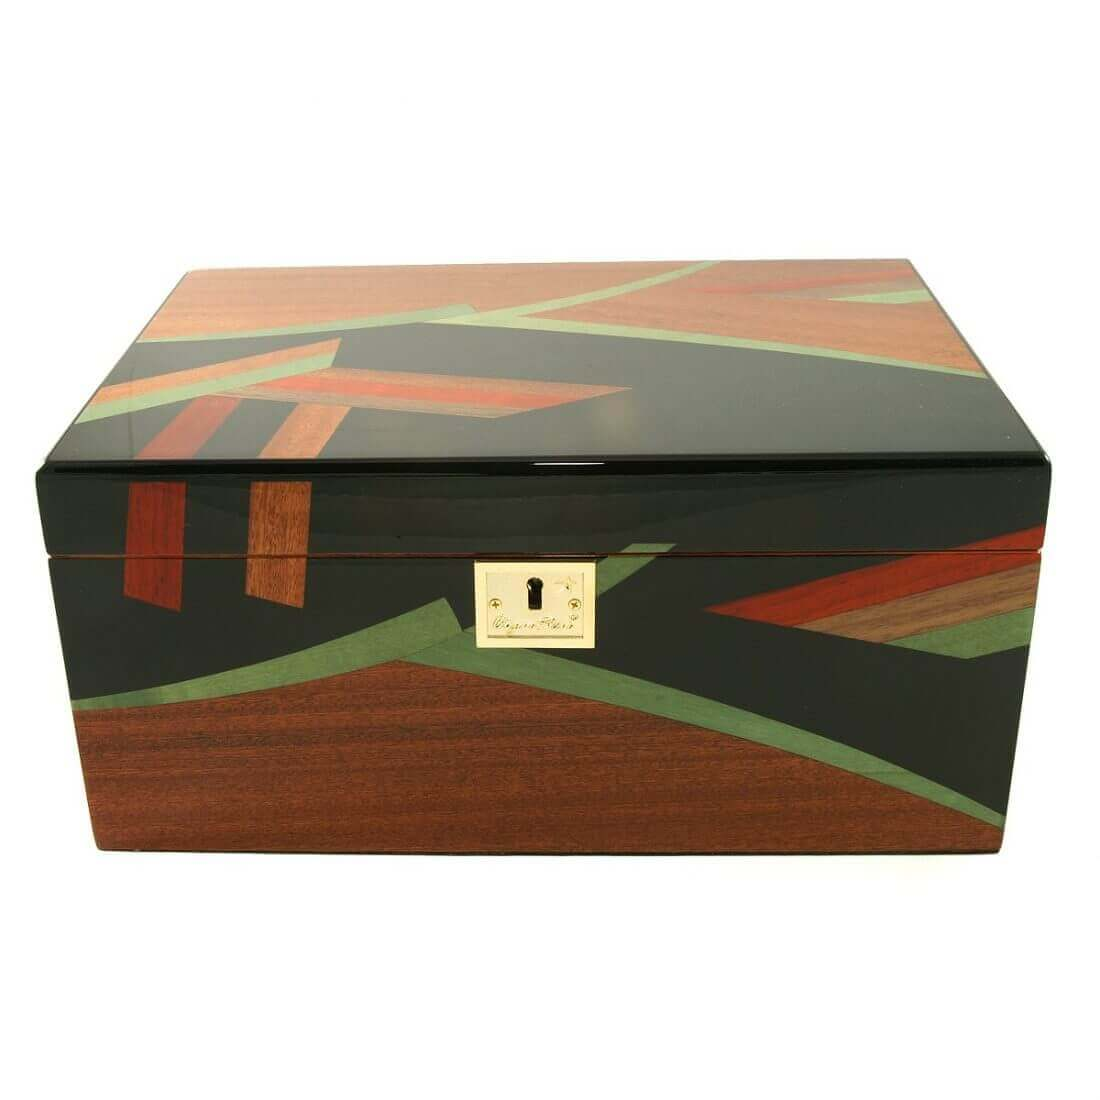 Obaco Ghana Limited Home: Buy Quality Humidors In